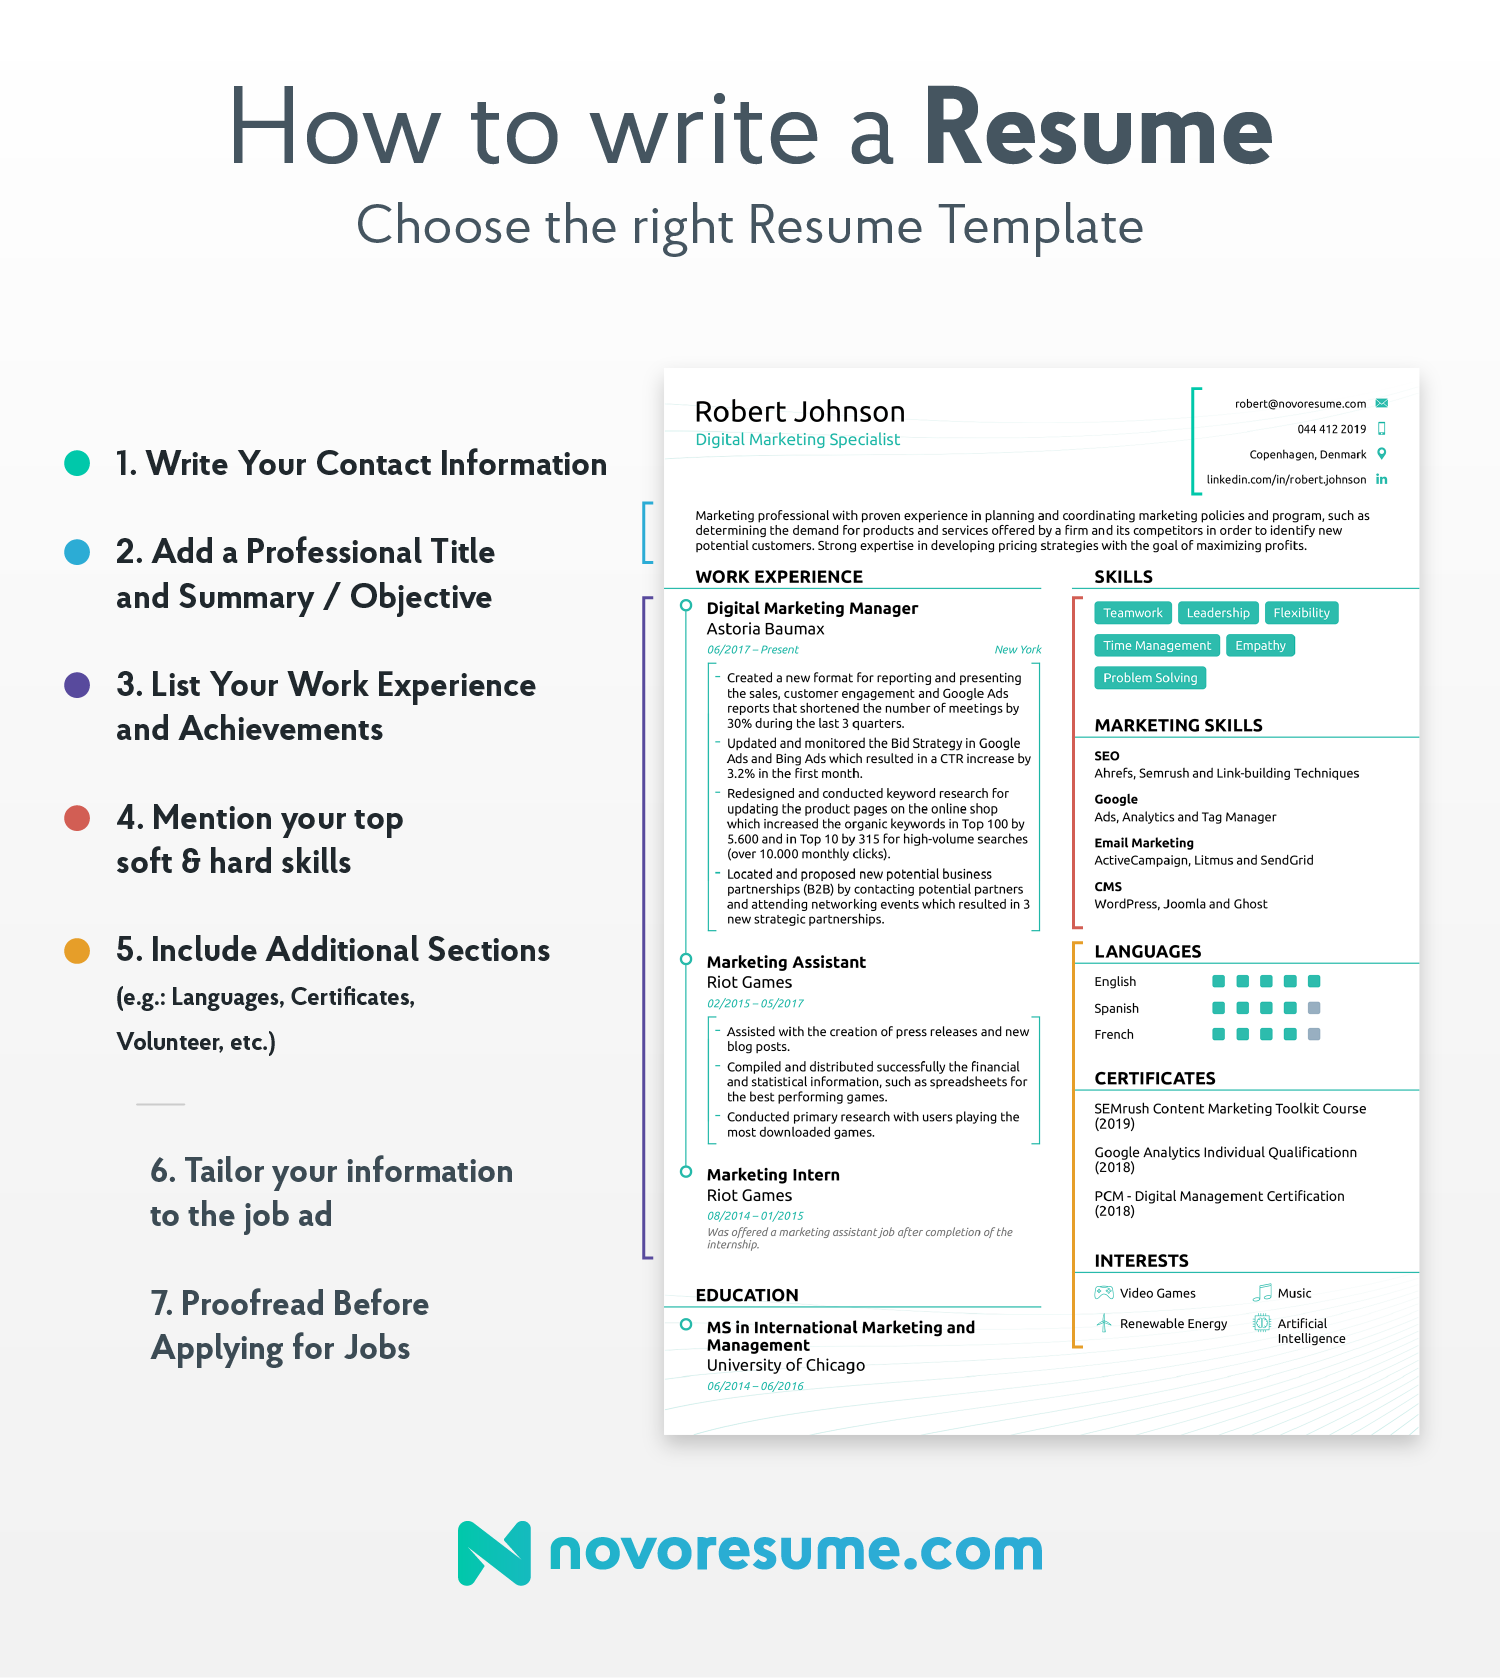 How To Make A Resume For A Job Application | How To Write A Resume 2019 Beginner S Guide Novoresume